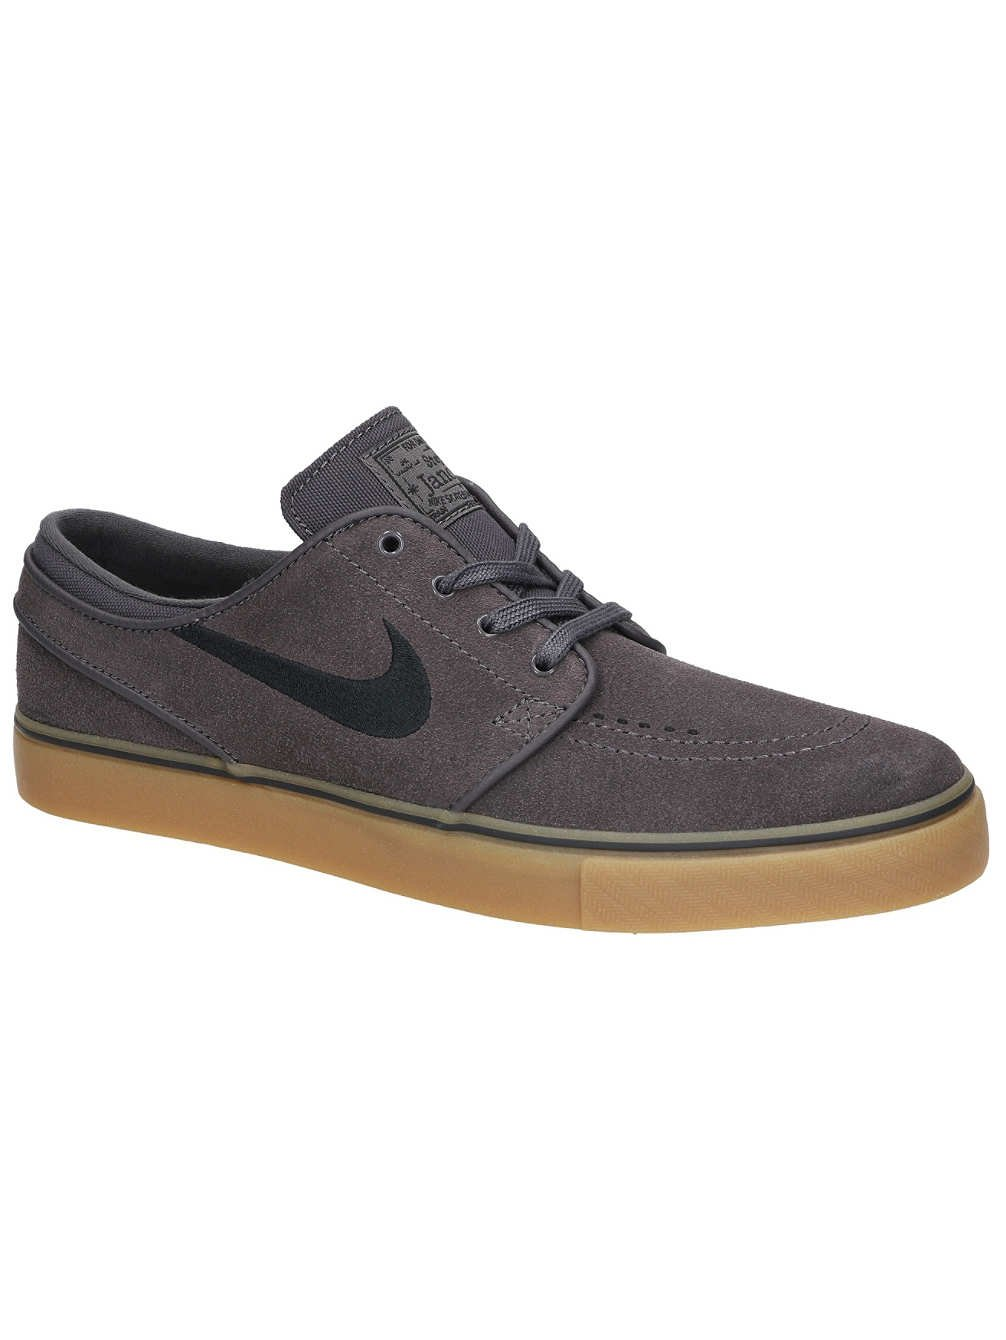 separation shoes 4faba 680ef Galleon - NIKE Men s Stefan Janoski Canvas Skate Shoe (10.5 D(M) US,  Thunder Grey Black)